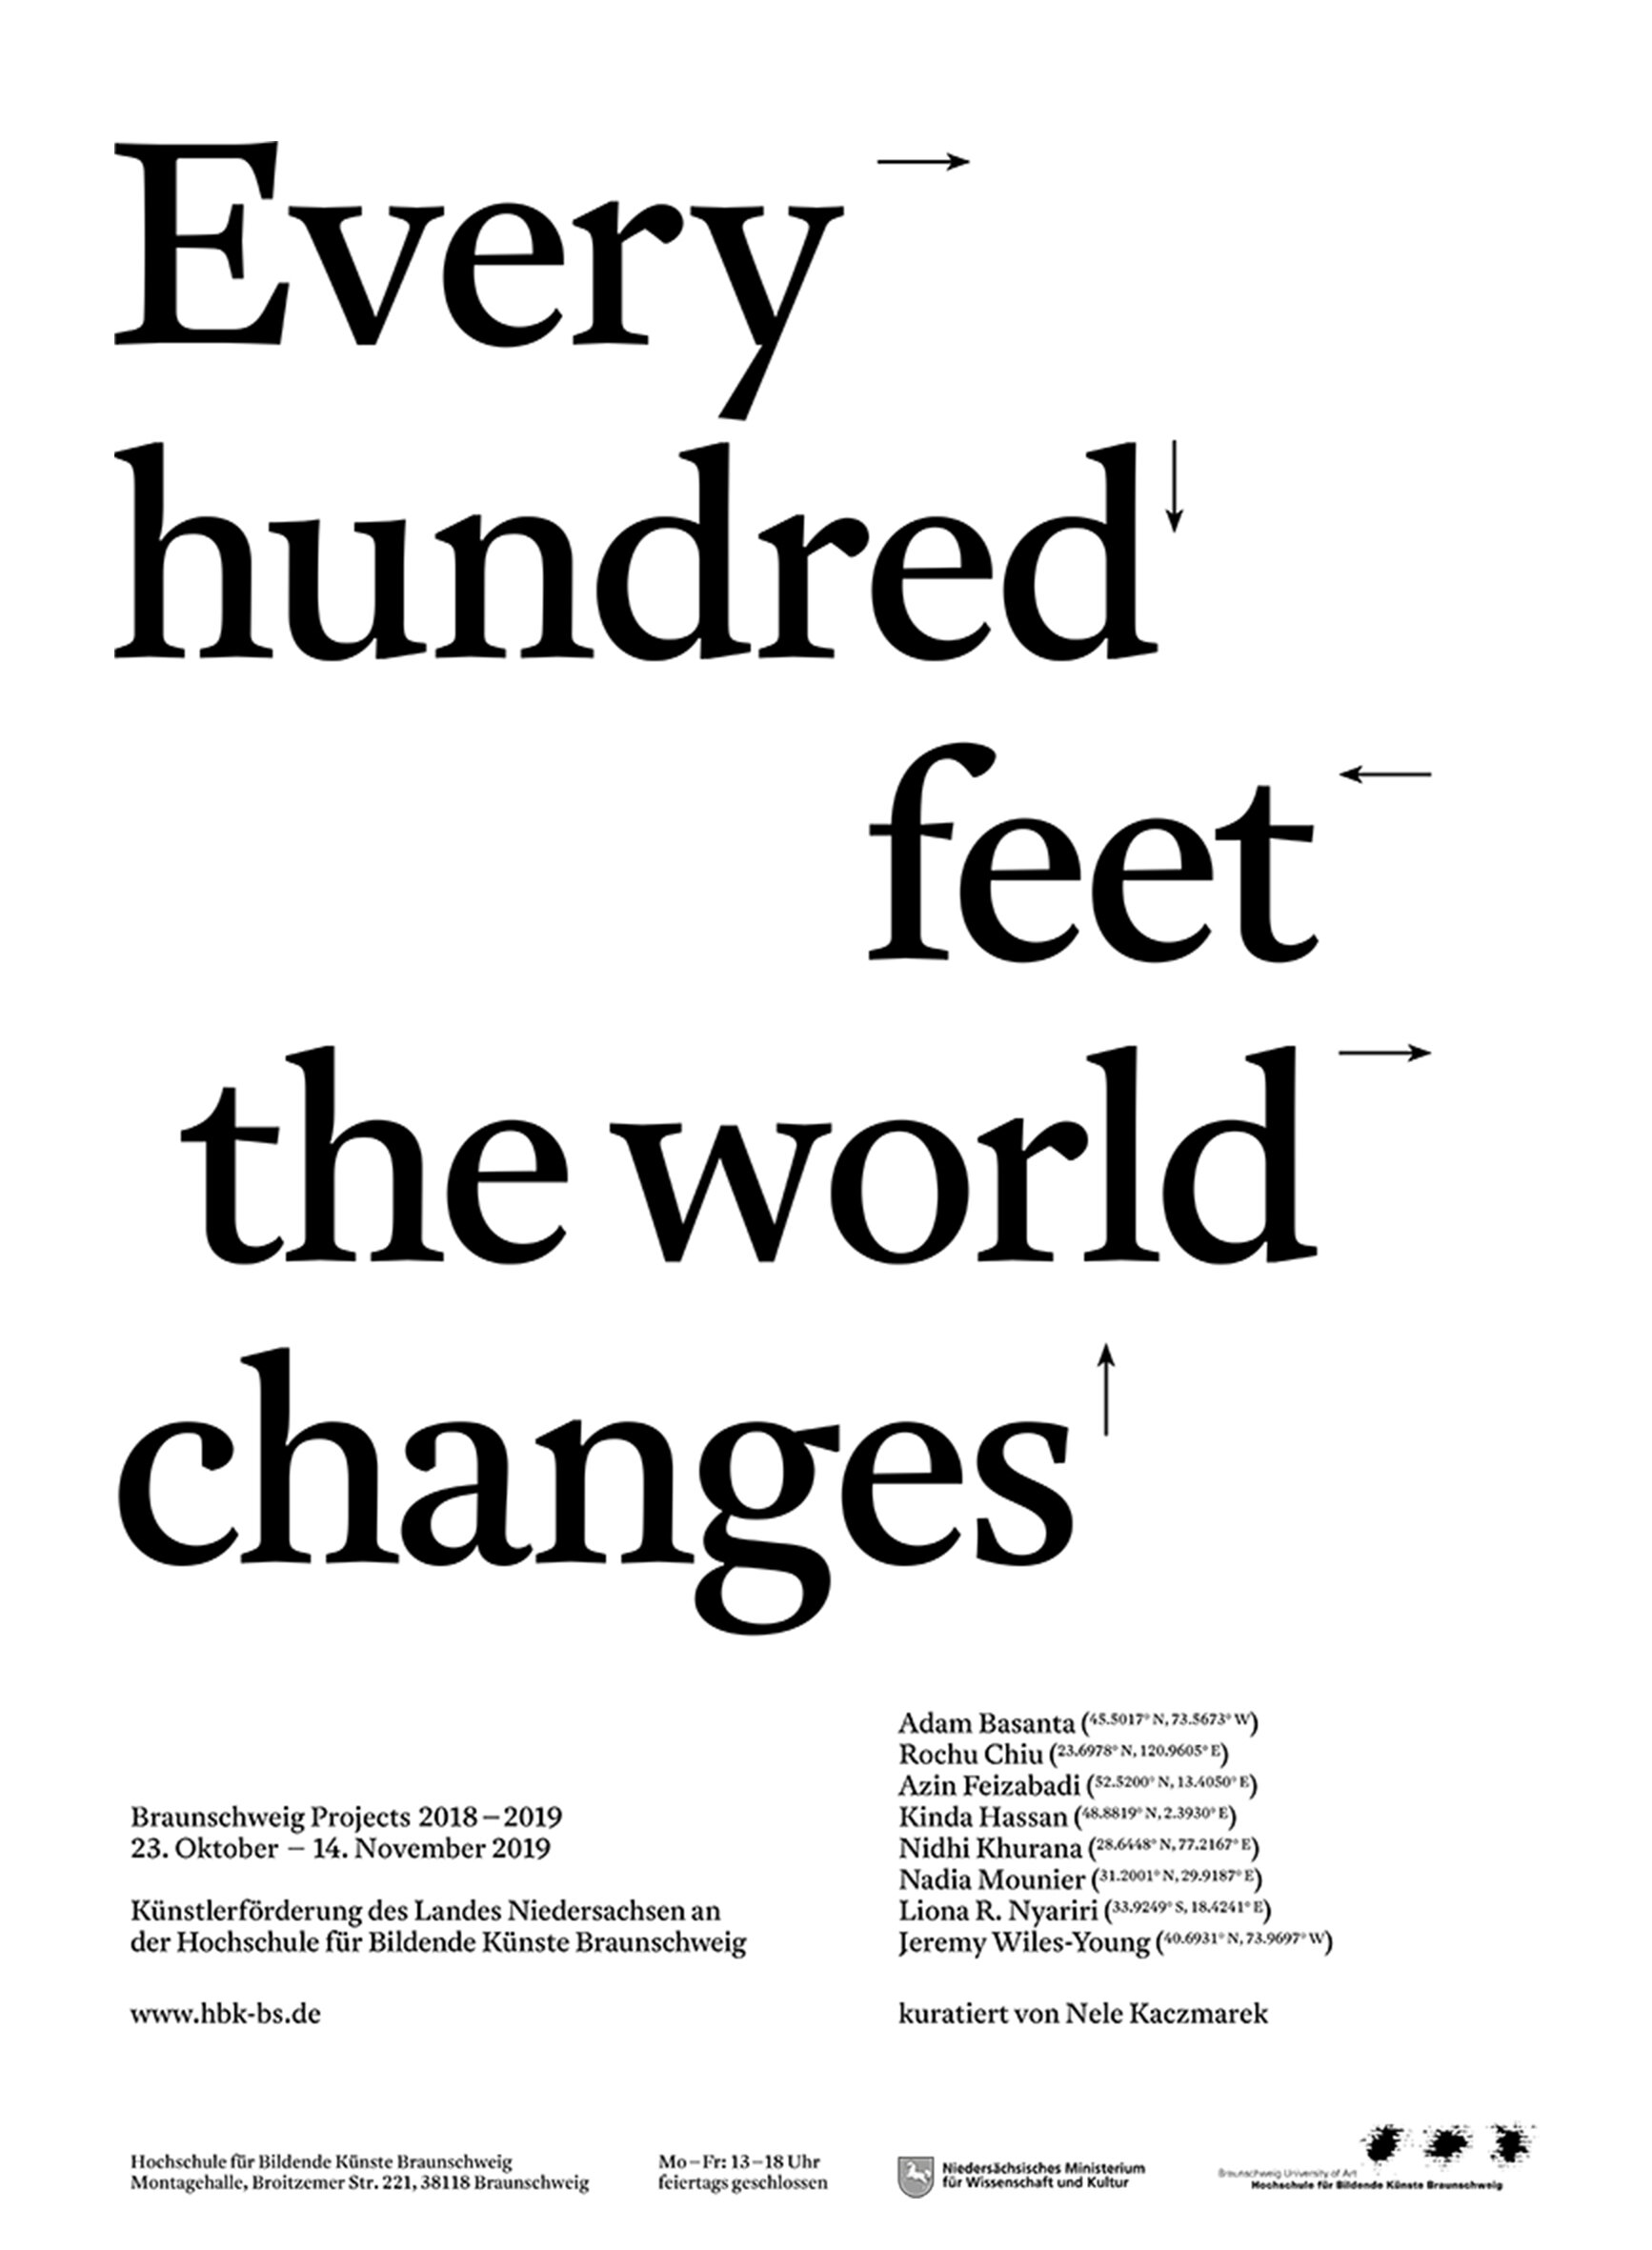 - EVERY HUNDRED FEET THE WORLD CHANGES23rd October 2019The final show of BS Projects 2019 is coming soon,